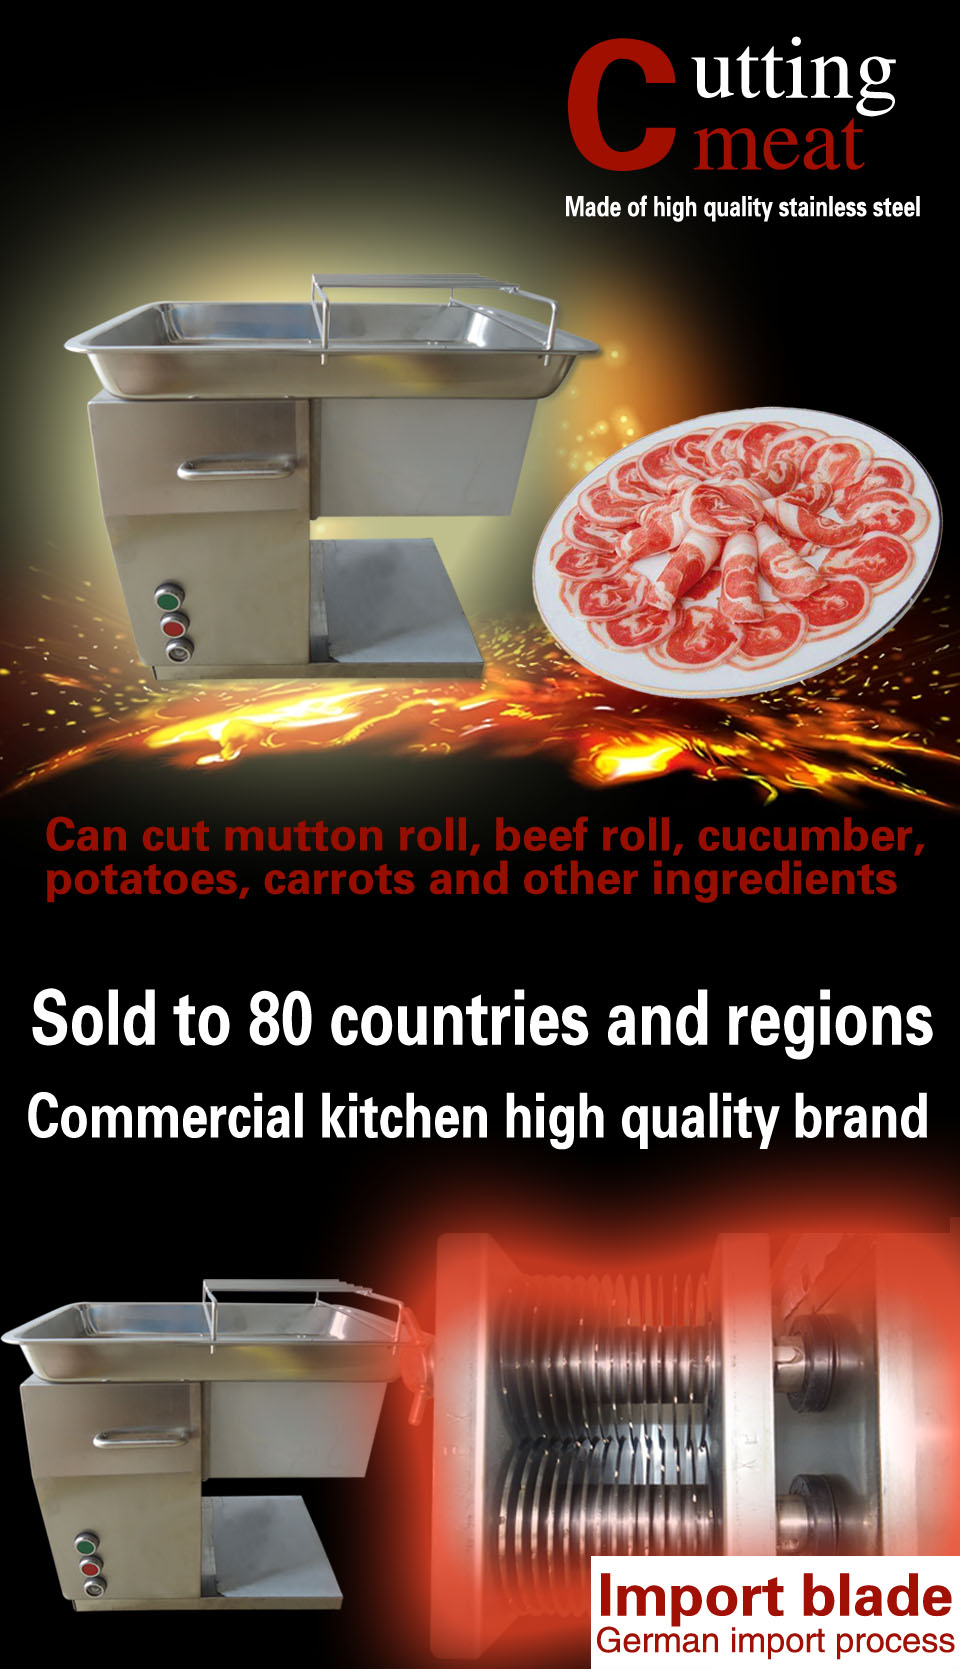 250Kg Hour Stainless Steel Meat Cutting Machine Restaurant Beef Cutter Slicer